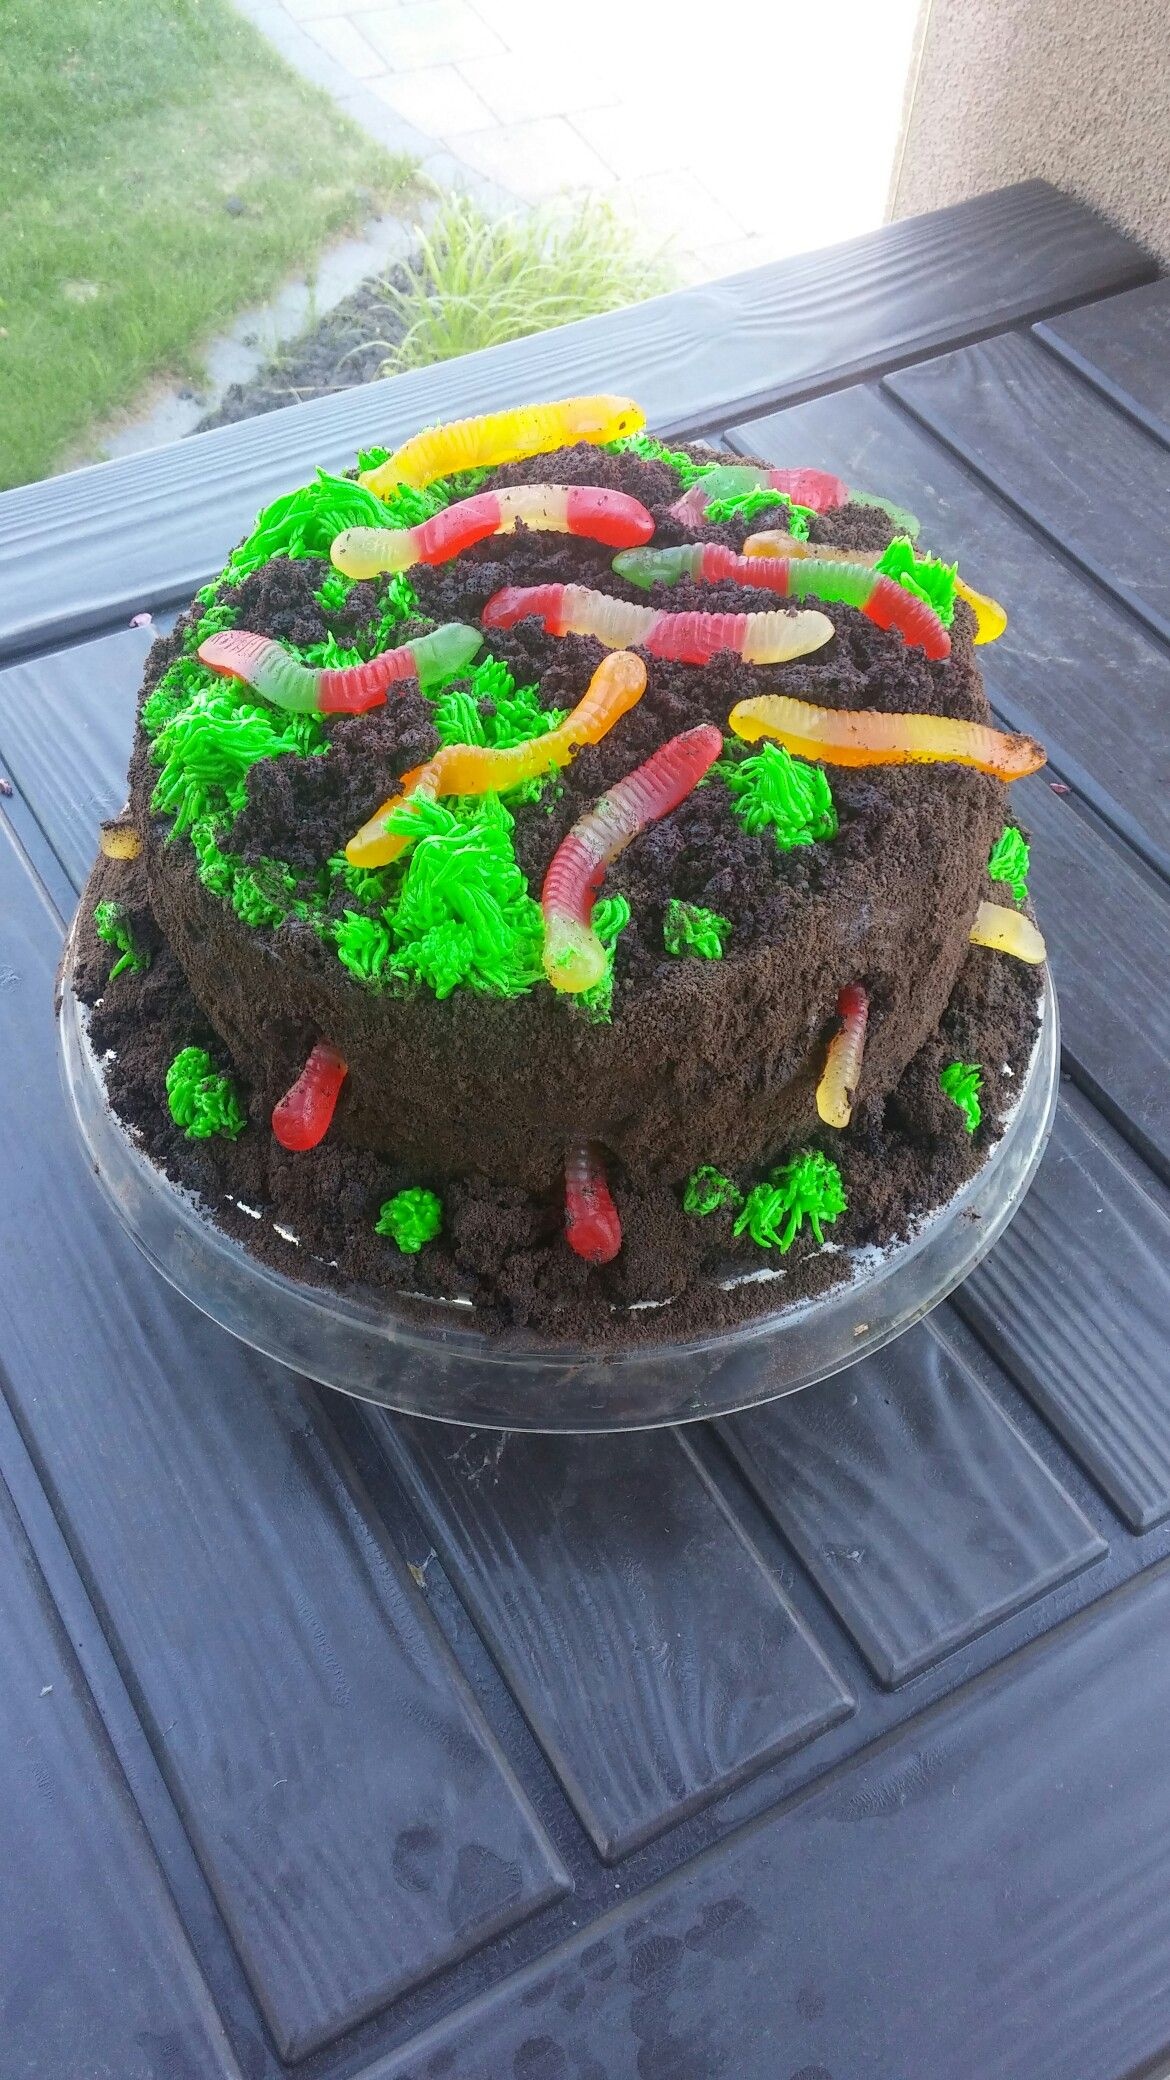 Worms And Dirt Cake Chocolate Fudge Cake Chocolate Buttercream